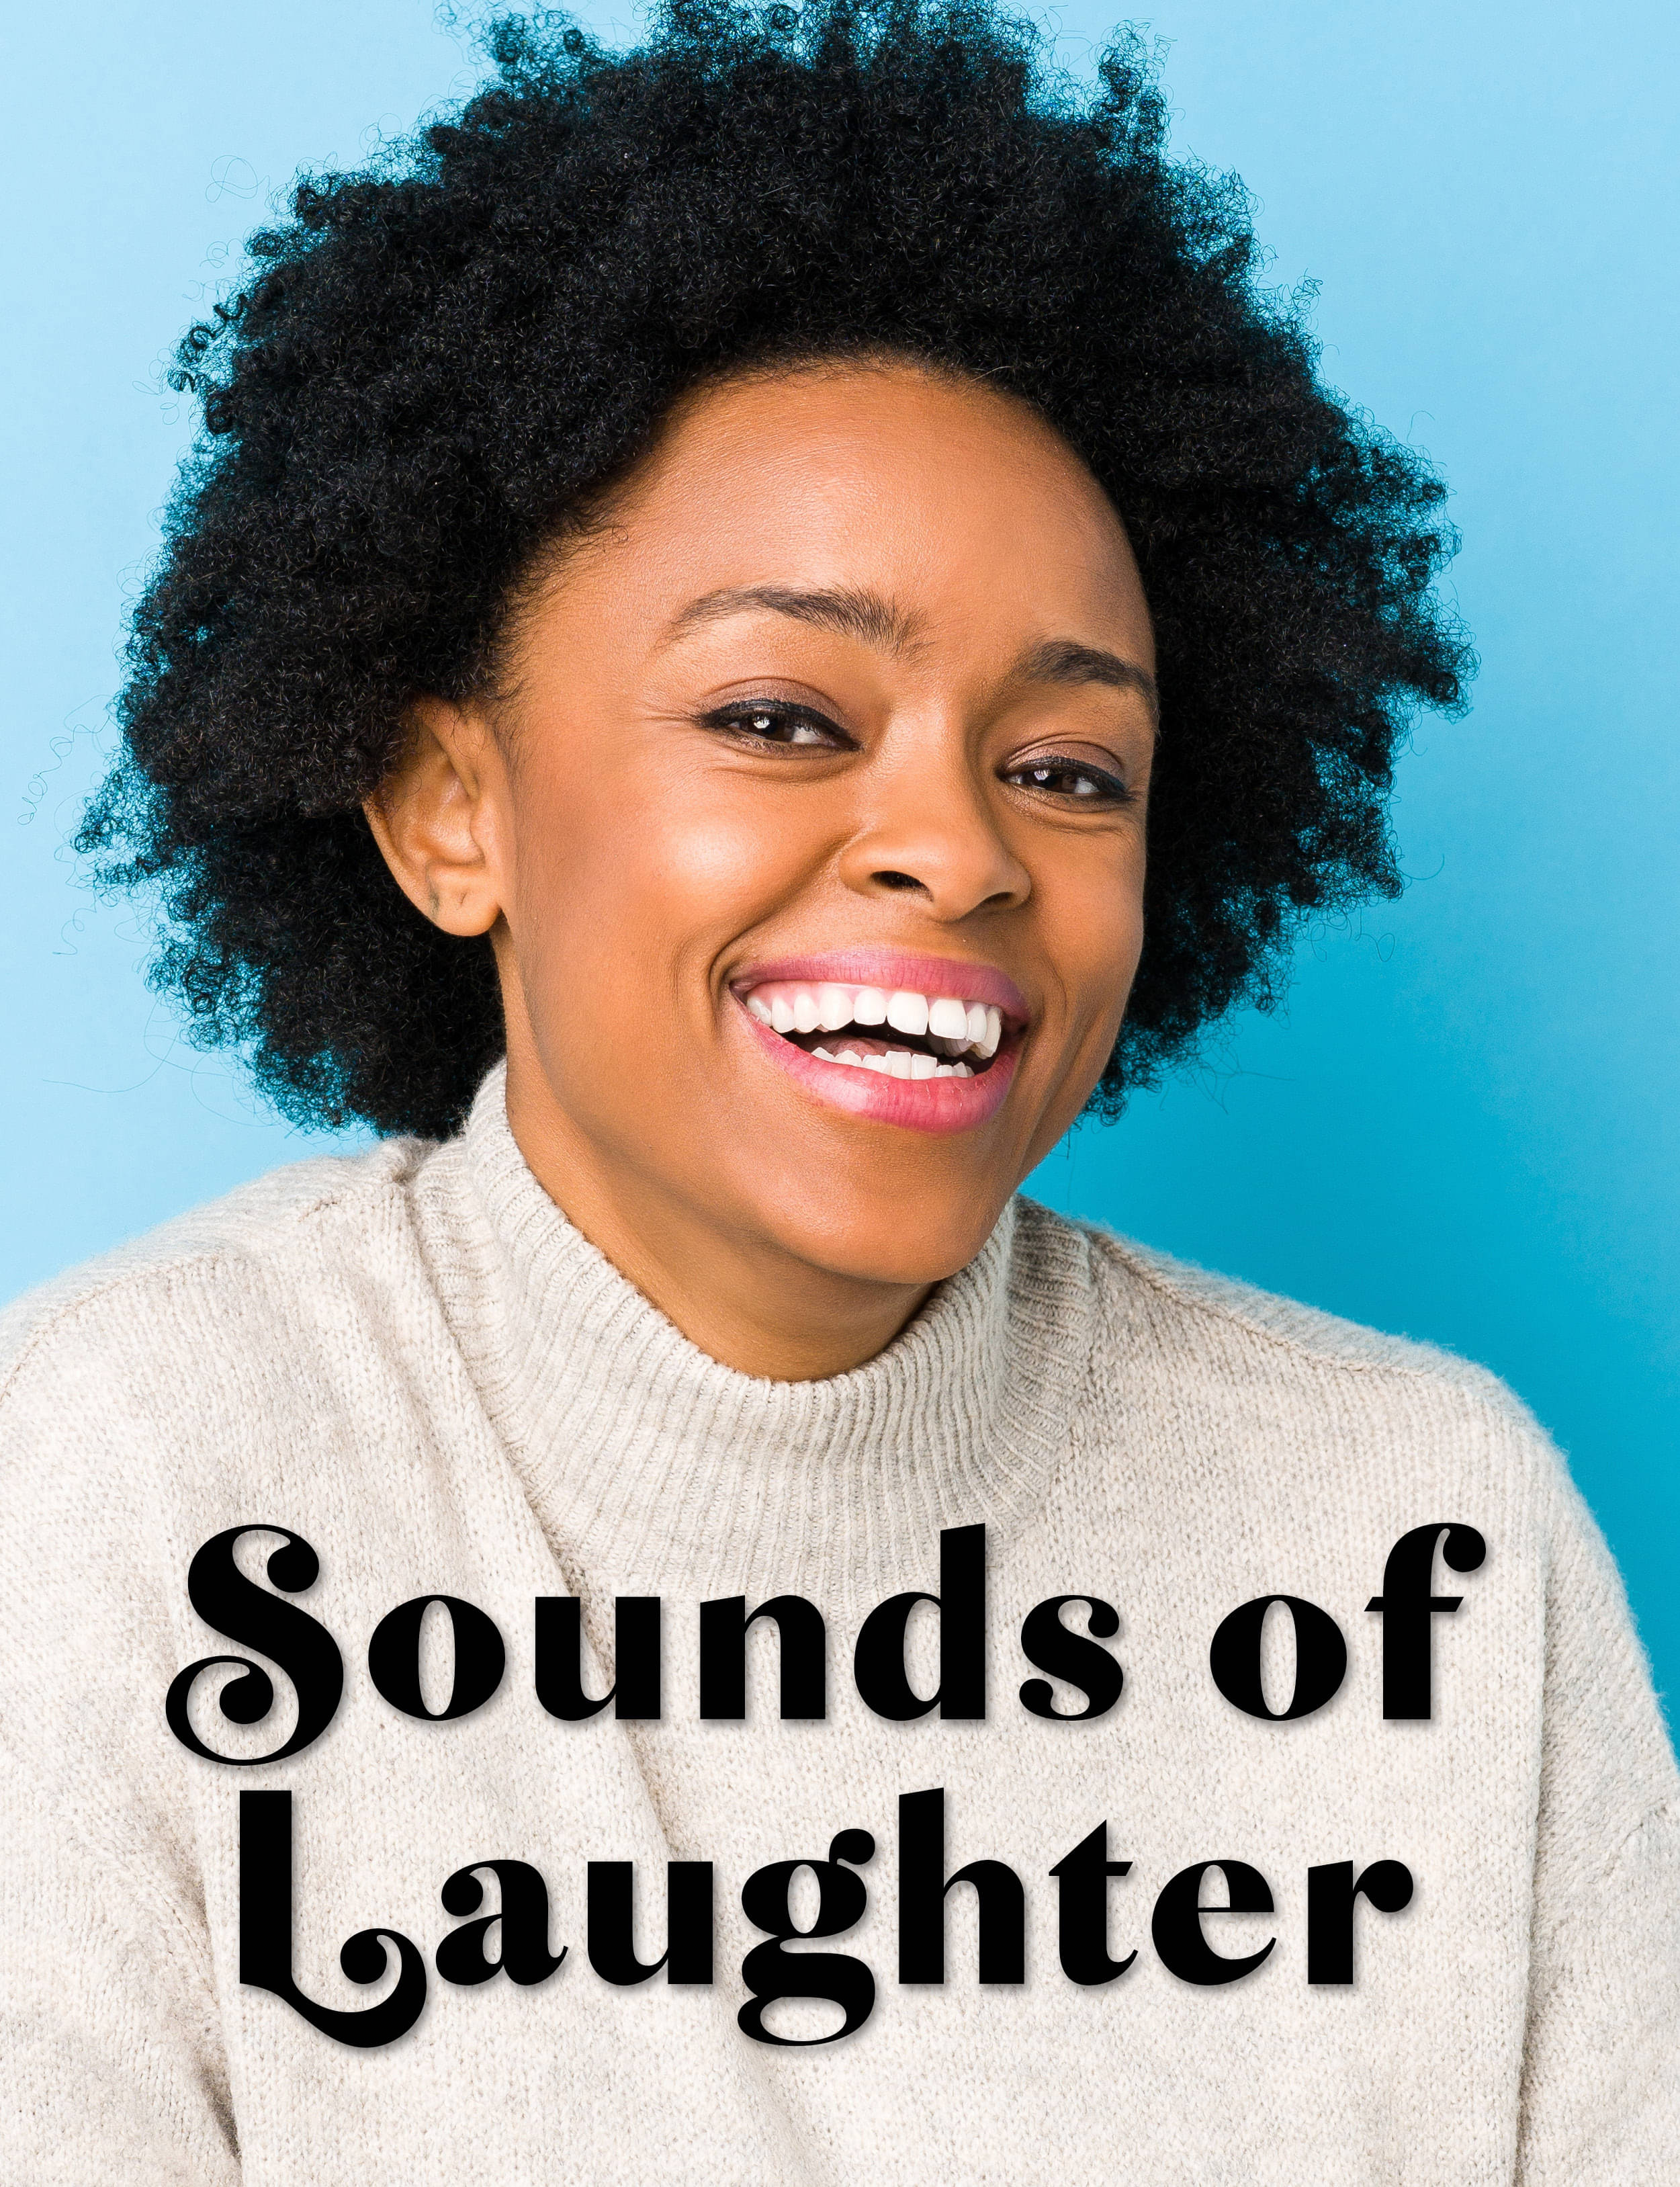 Sounds of Laughter